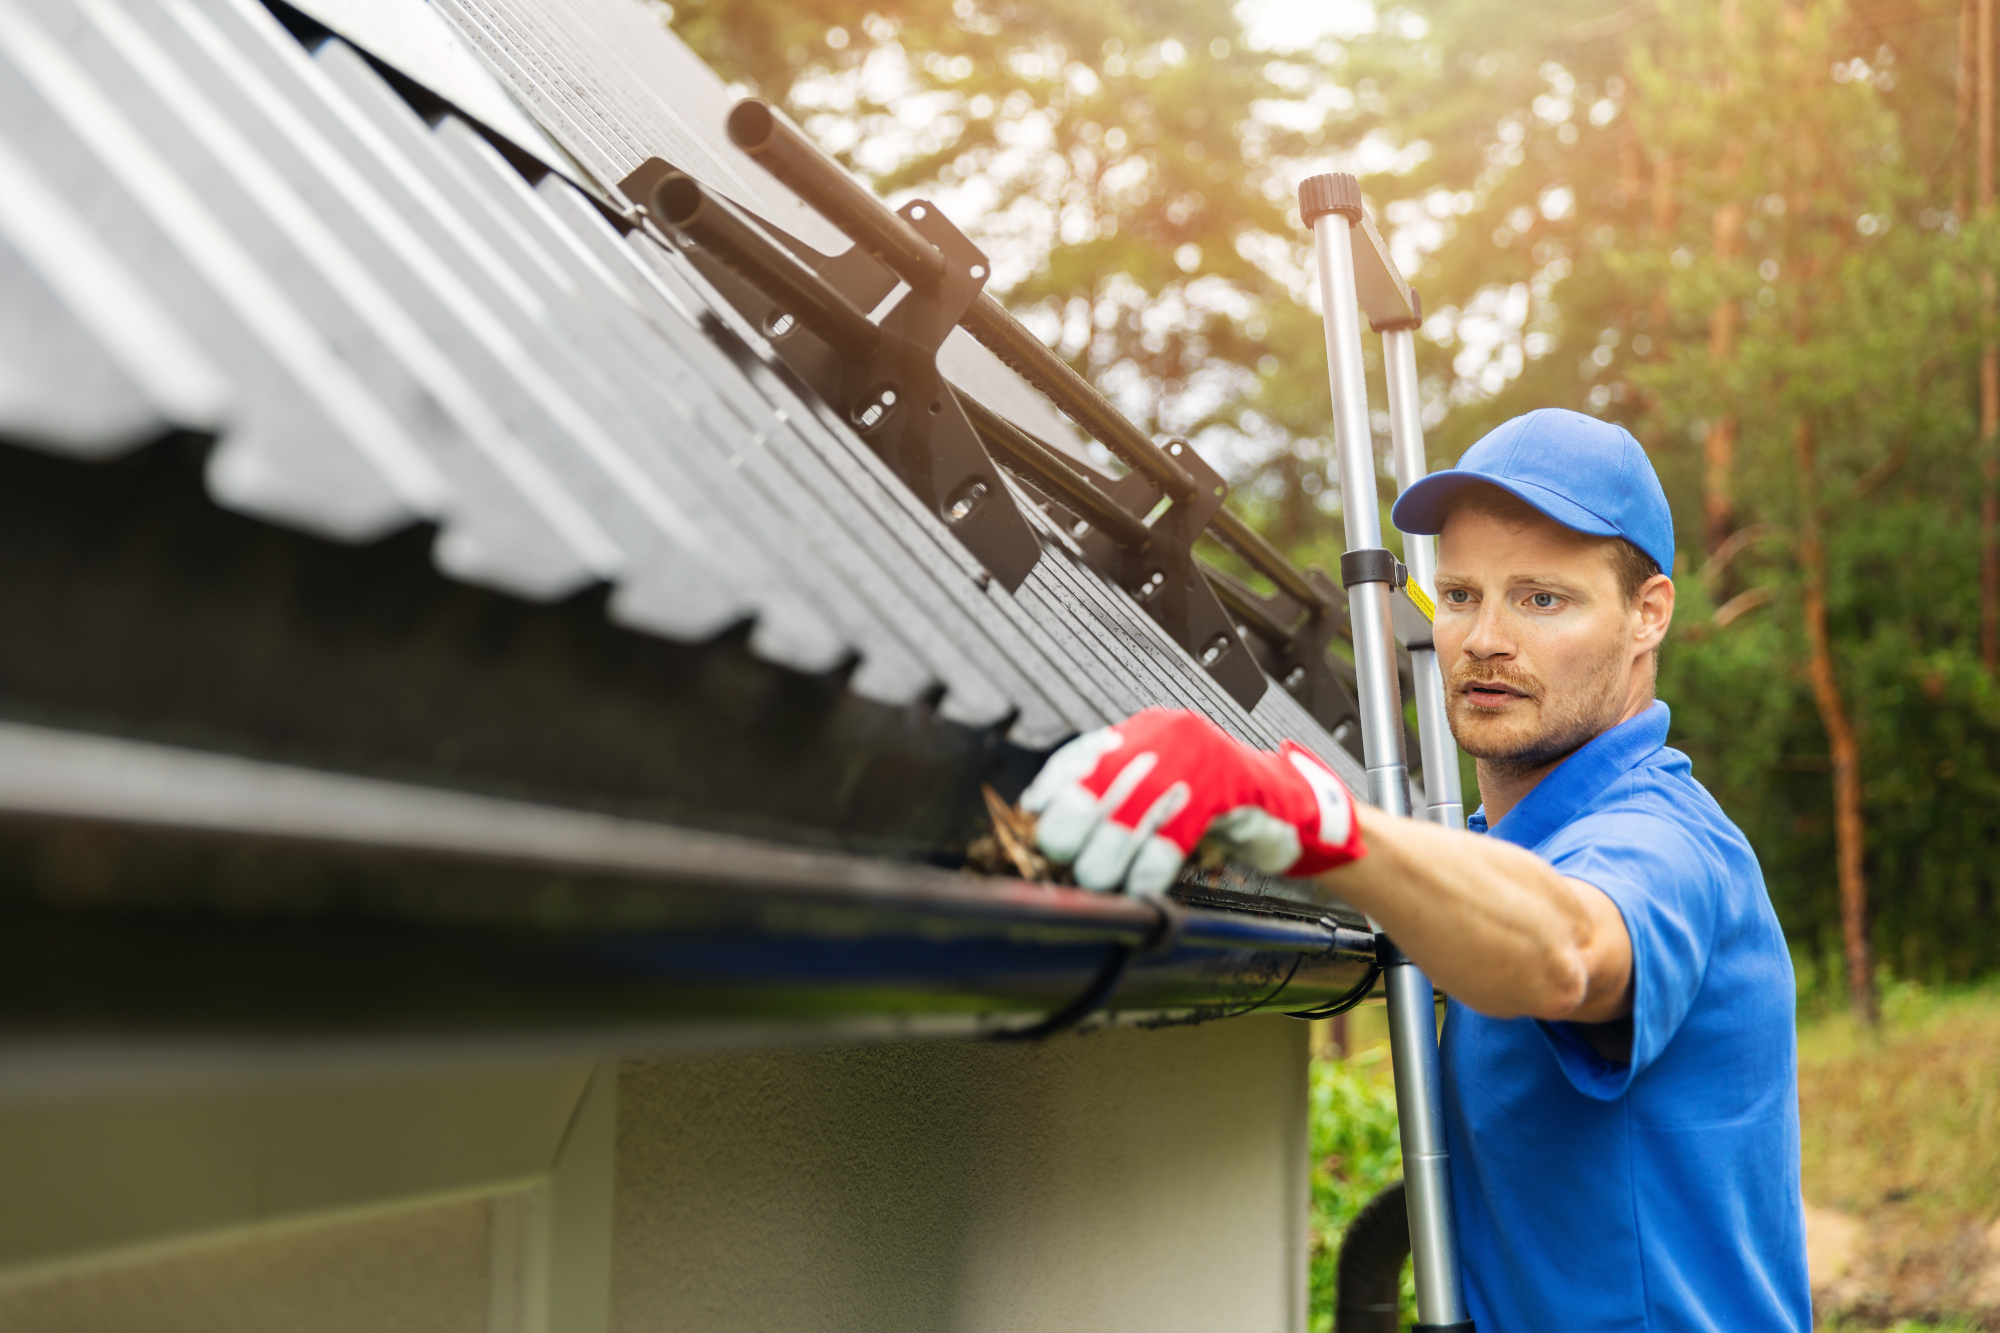 Roofing Gutter Cleaning